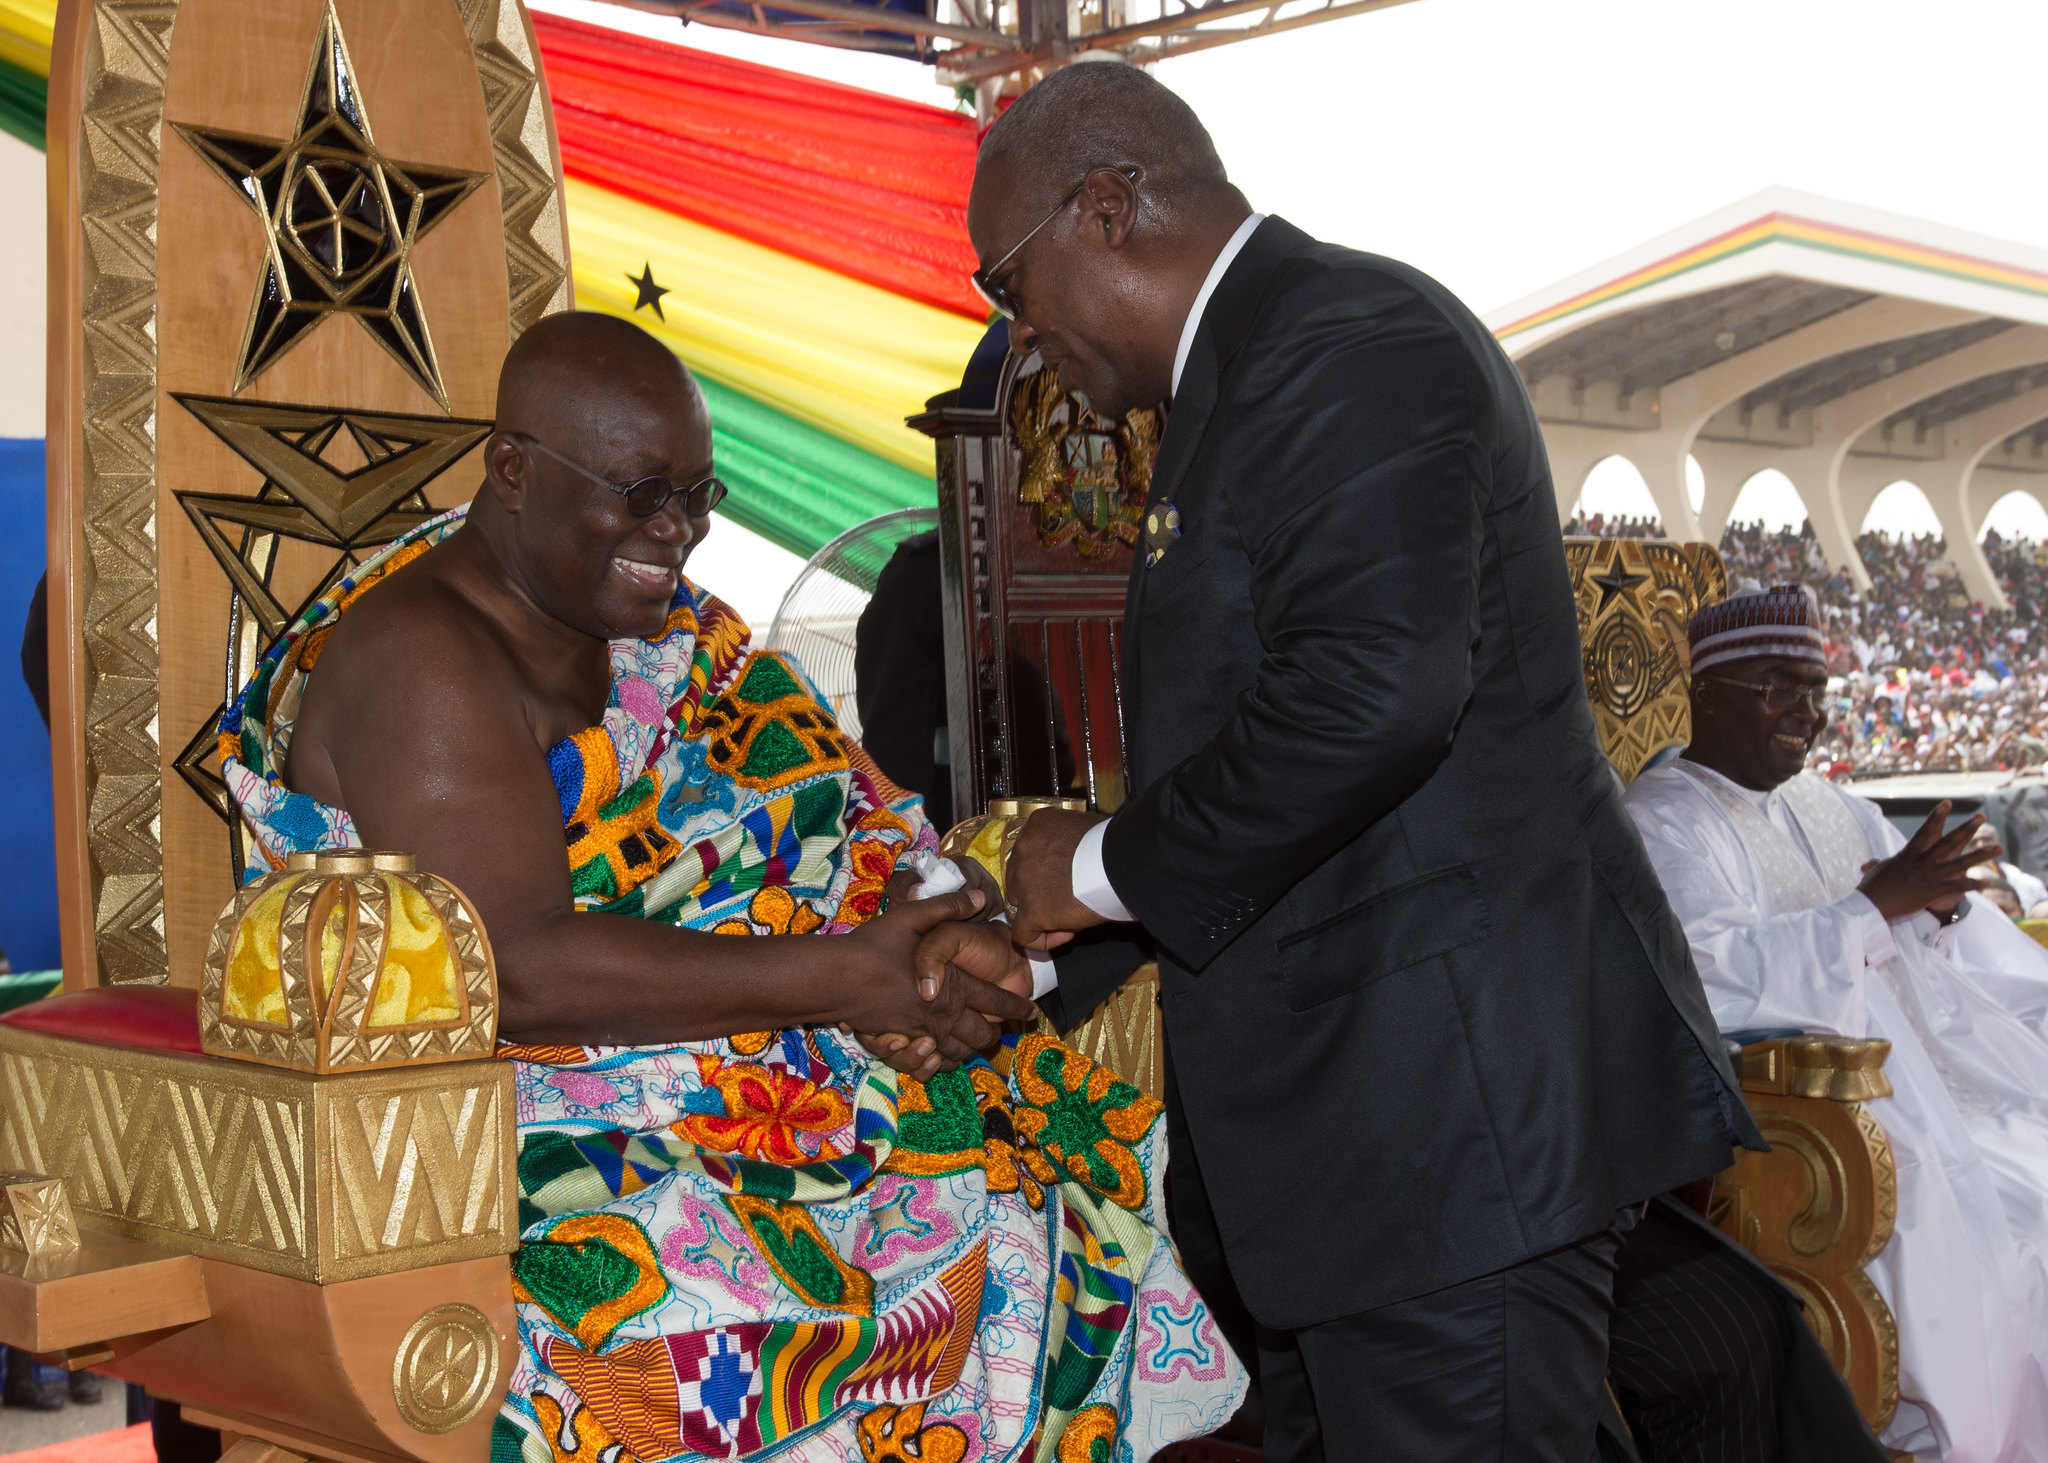 President John Mahama attends the inauguration of his successor, President Nana Addo Dankwa Akuffo Addo at the Independence Square